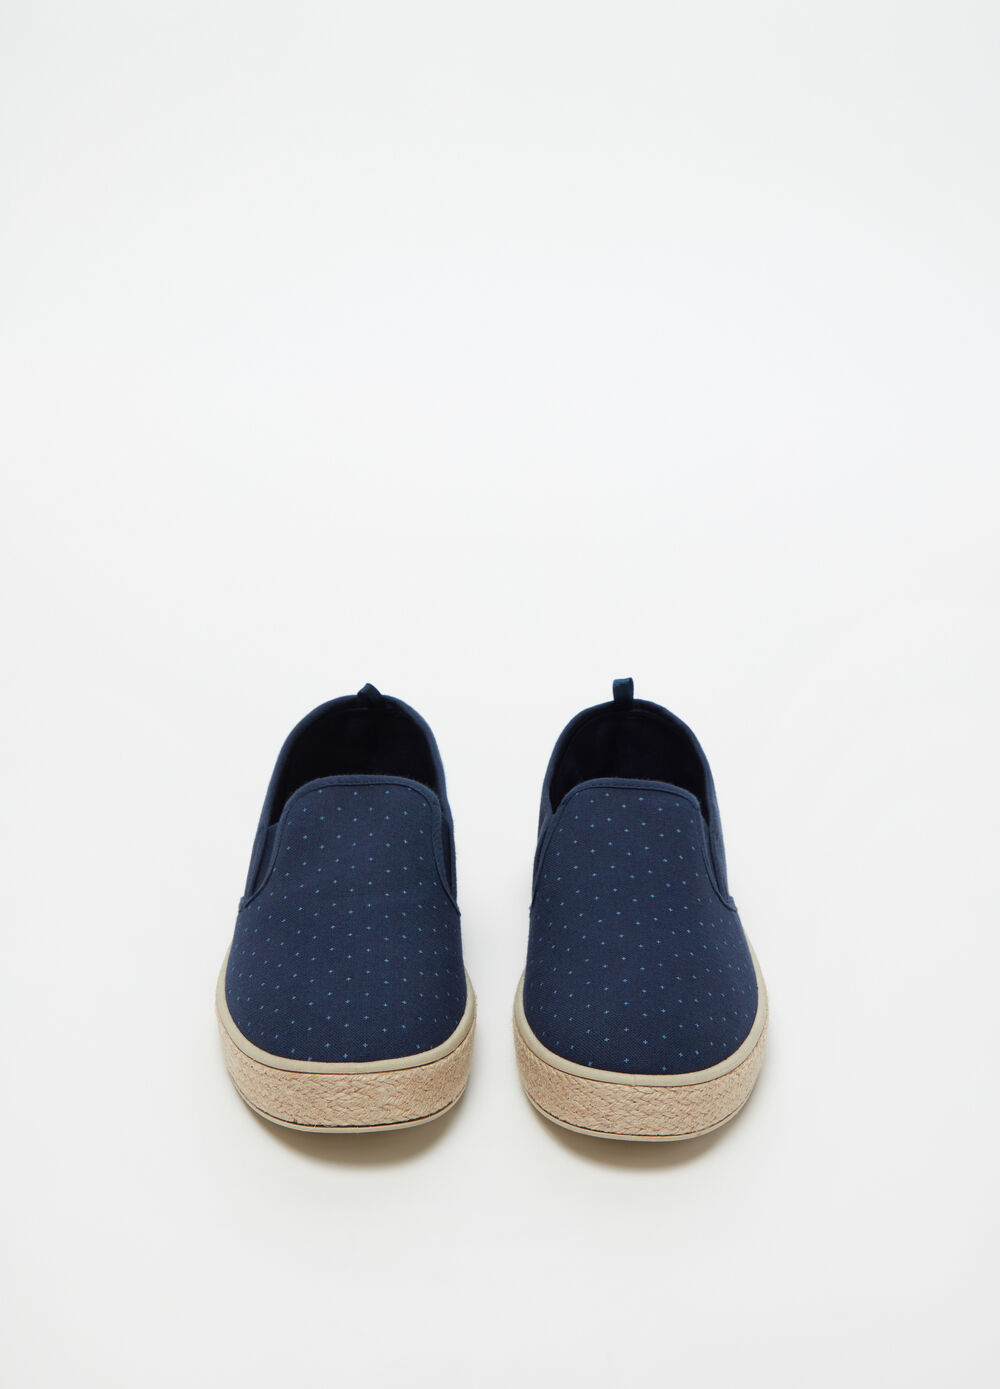 Geometric patterned slip-ons